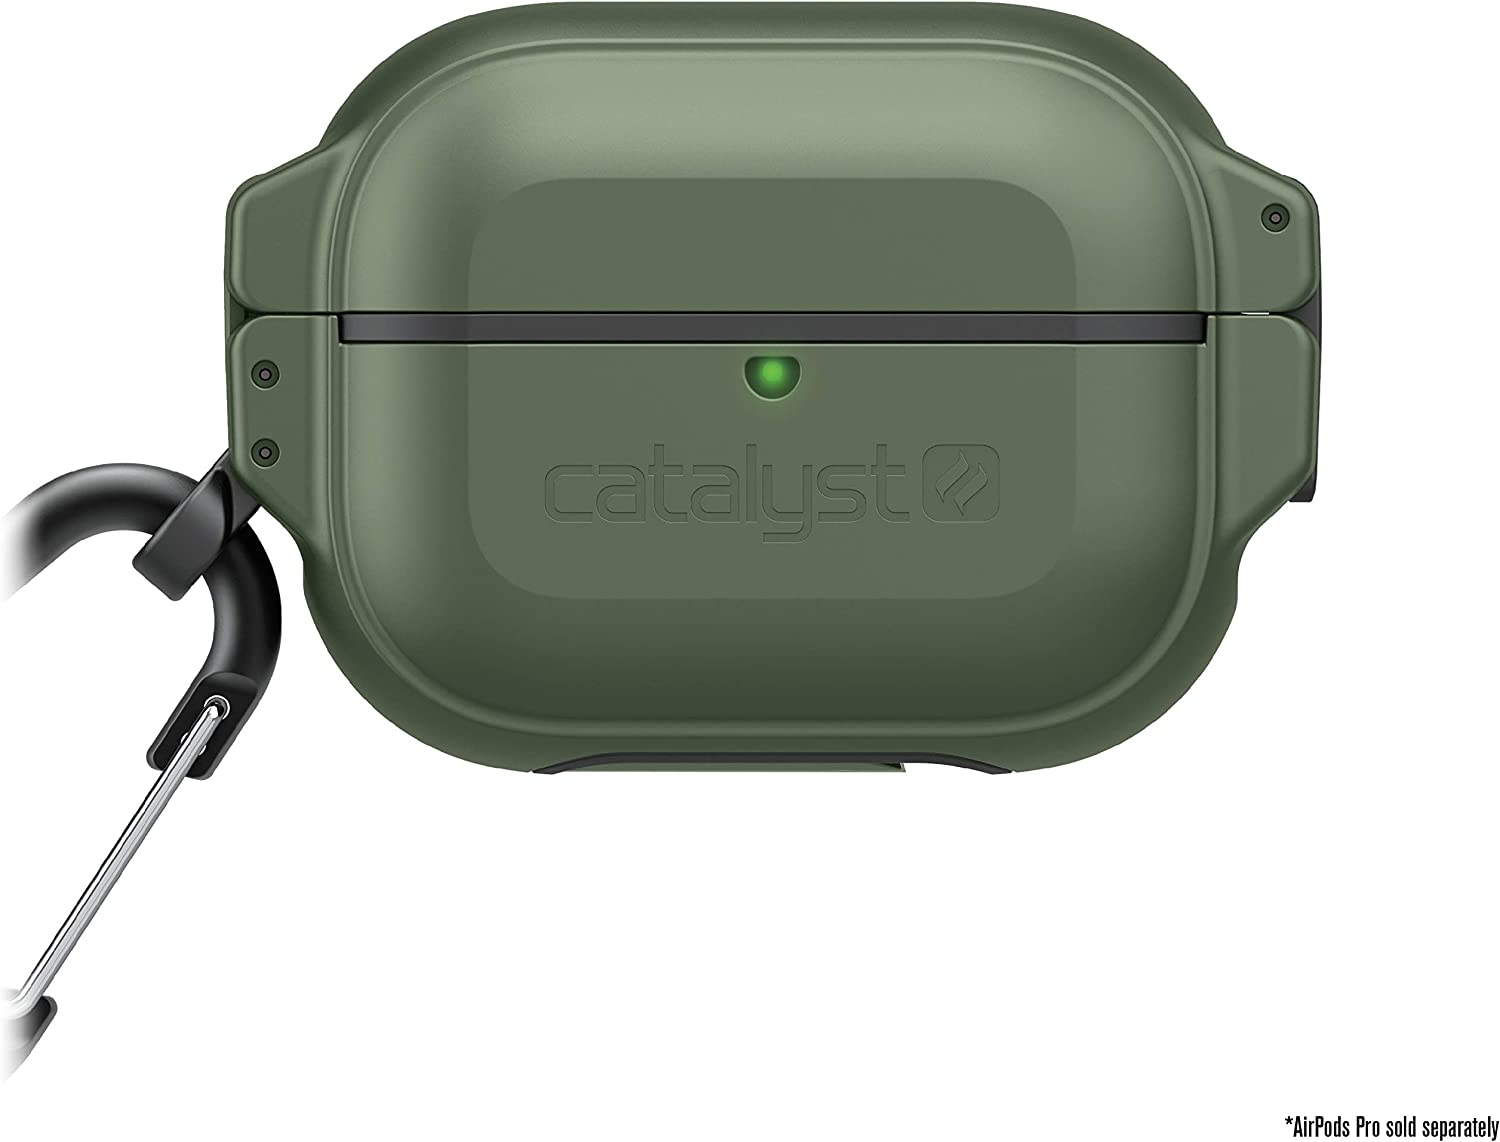 330ft Waterproof Total Protection Case for AirPods Pro, Secure Locking System, Full-Body Protective Rugged case for AirPods Pro, Shockproof, Carabiner by Catalyst - Army Green